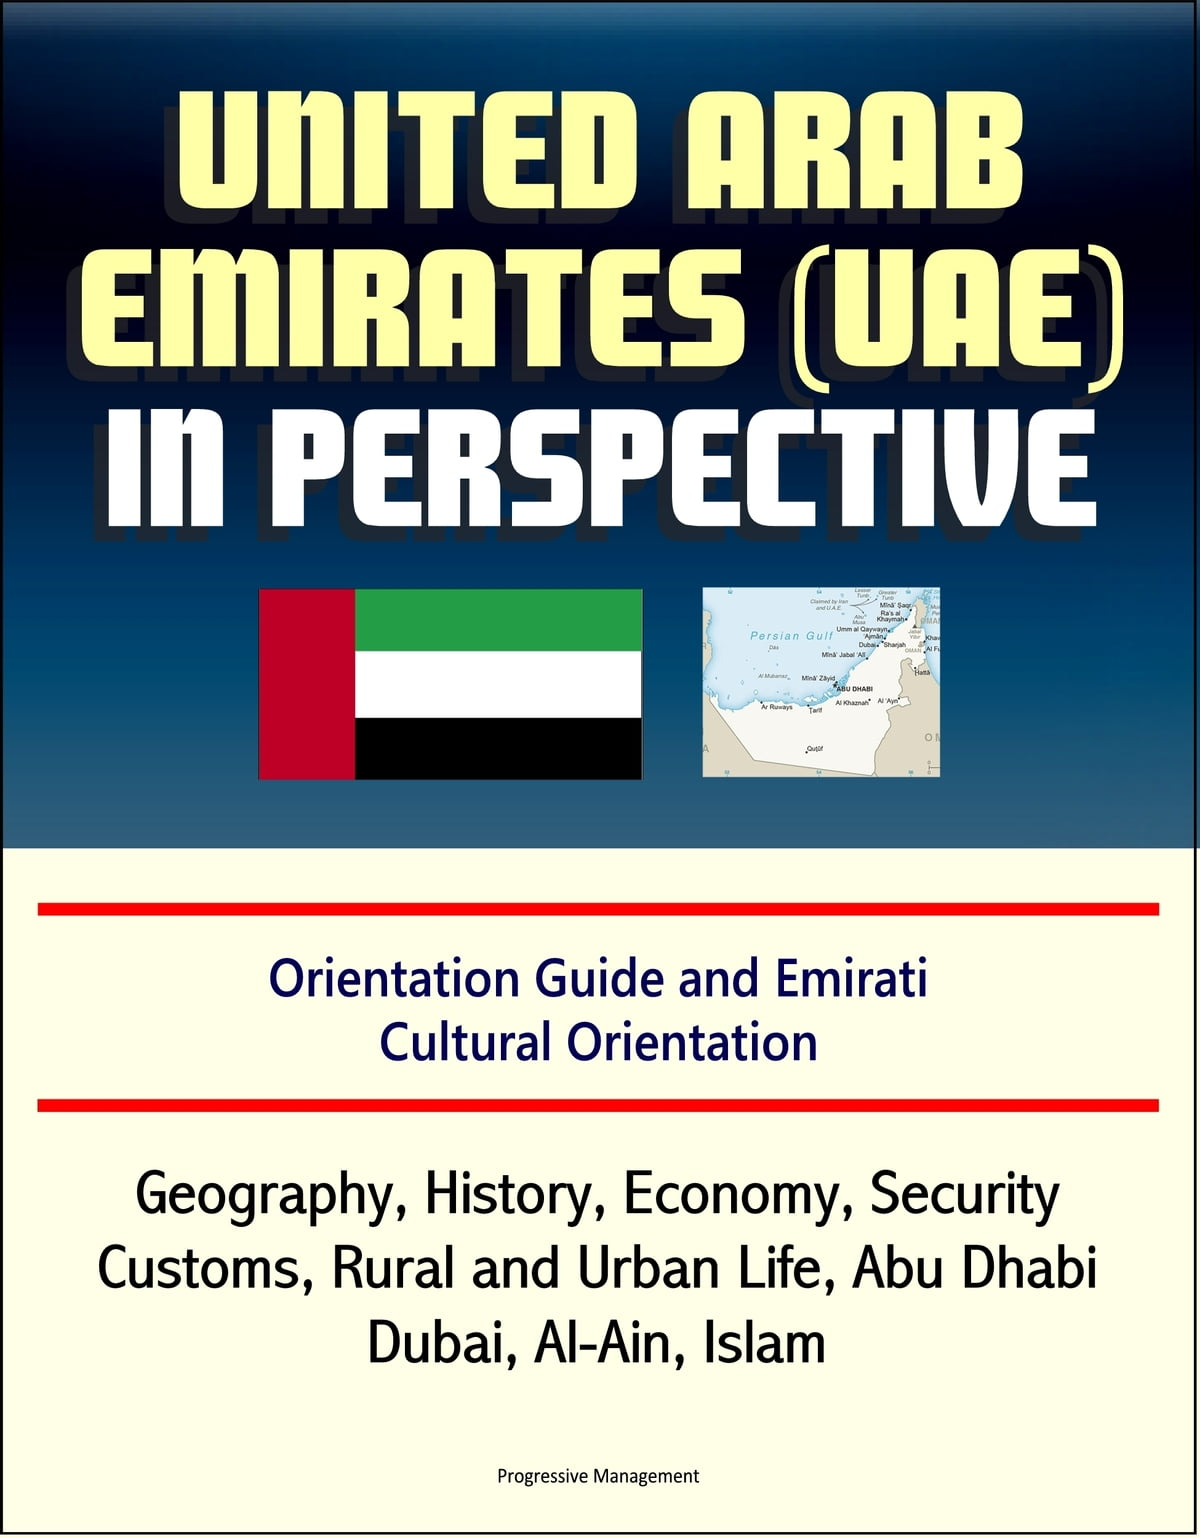 United Arab Emirates (UAE) in Perspective - Orientation Guide and Emirati  Cultural Orientation: Geography, History, Economy, Security, Customs, ...